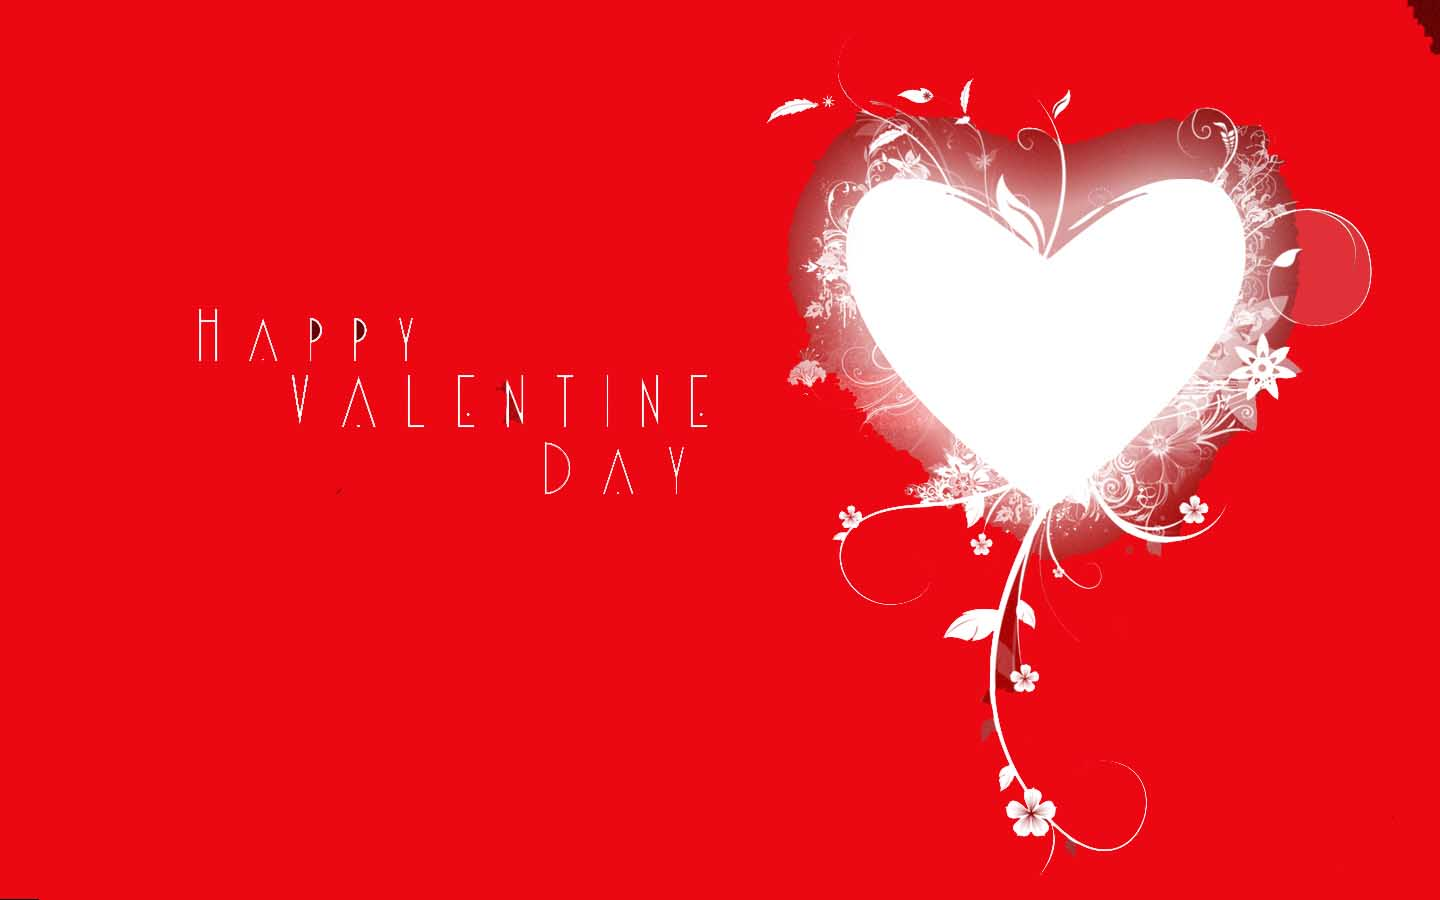 Valentine's Day HD Wallpapers